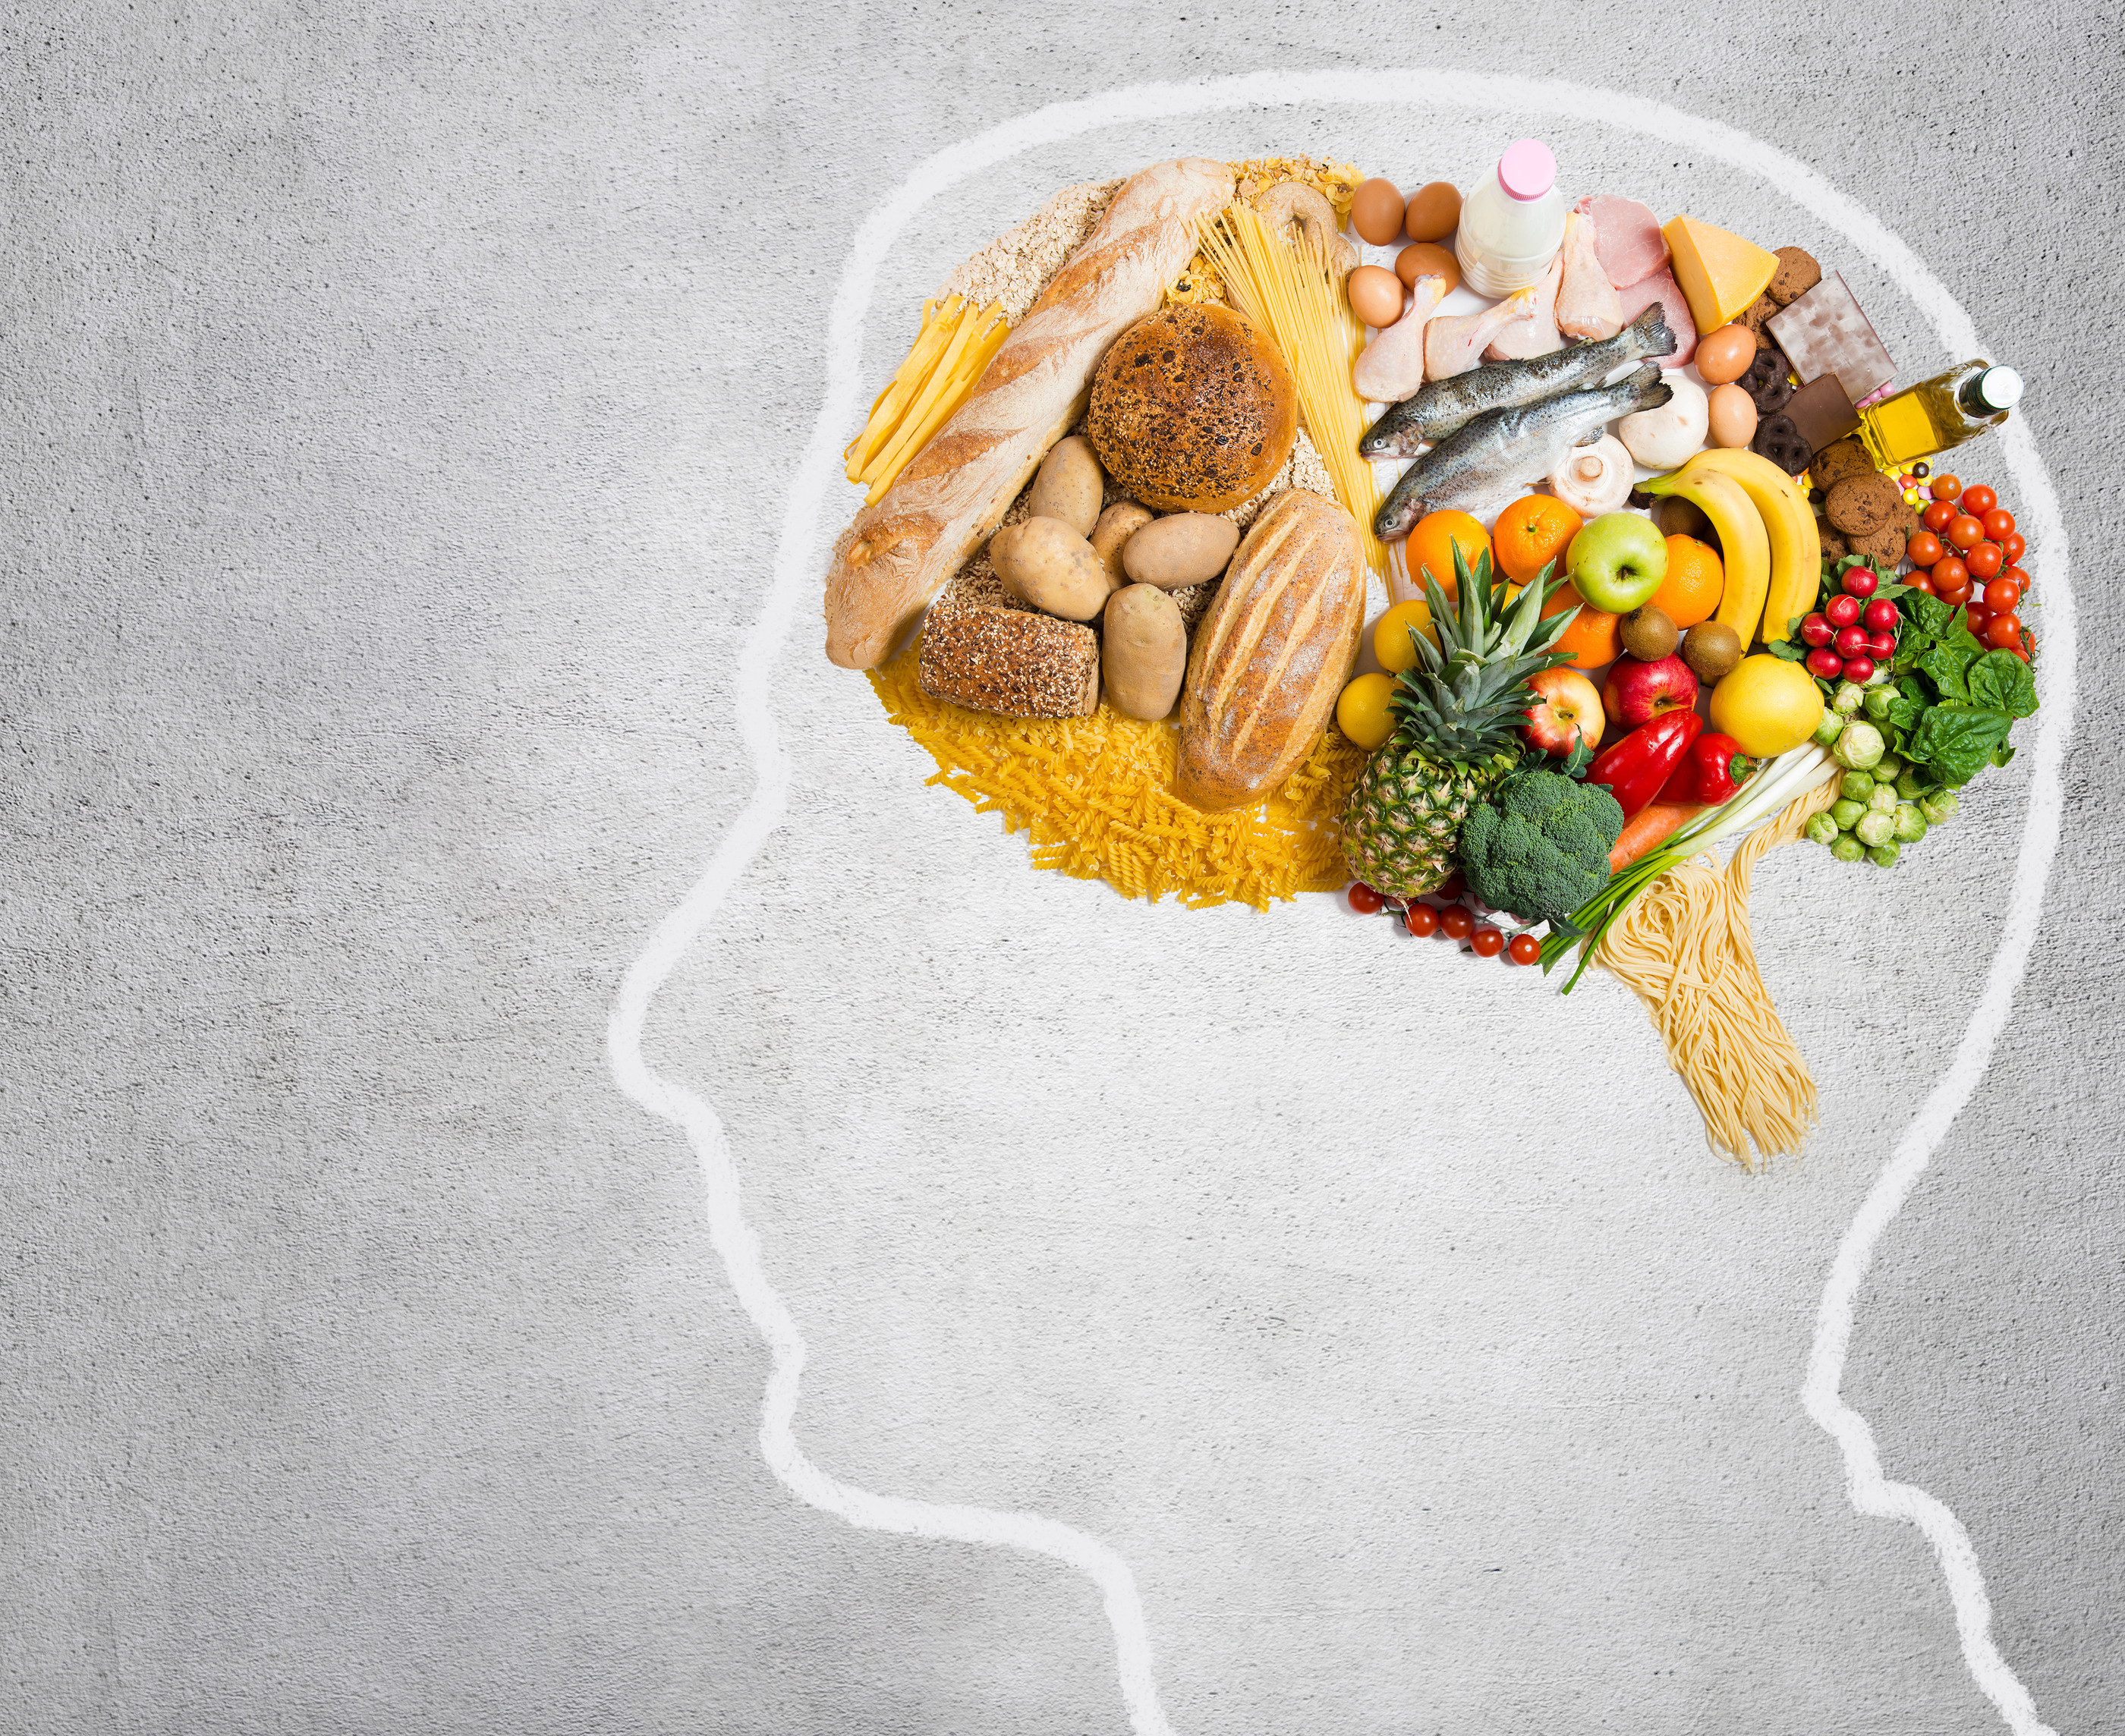 bigstock-diet-brain-Food-For-Though-81817028